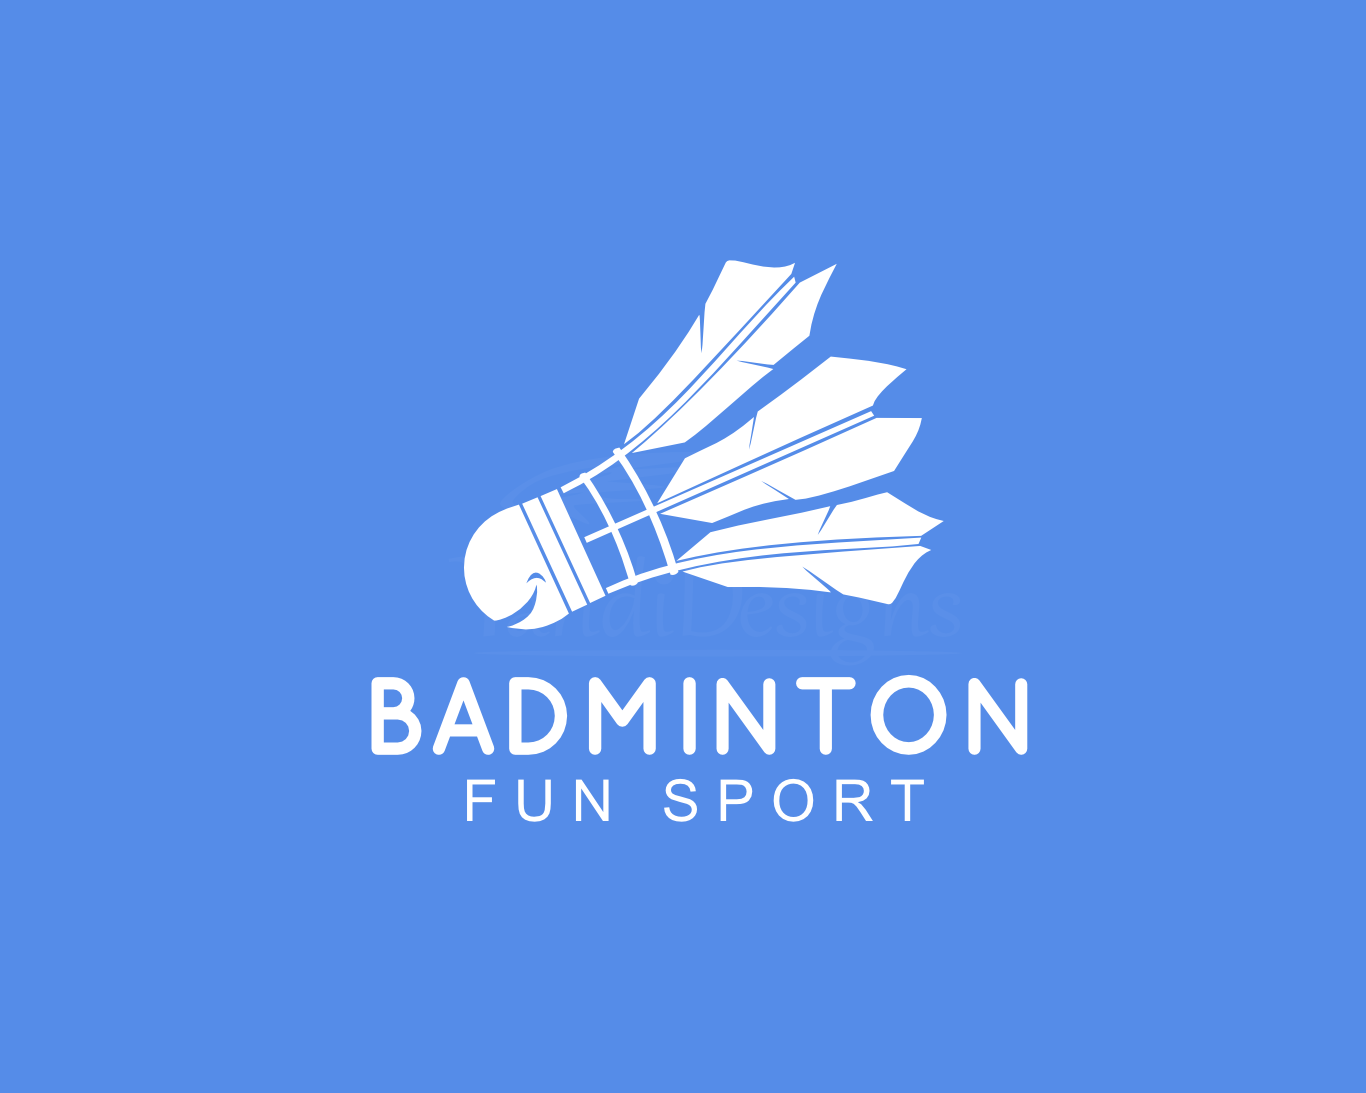 Design t shirt badminton - Badminton Fun Sport Logo Design